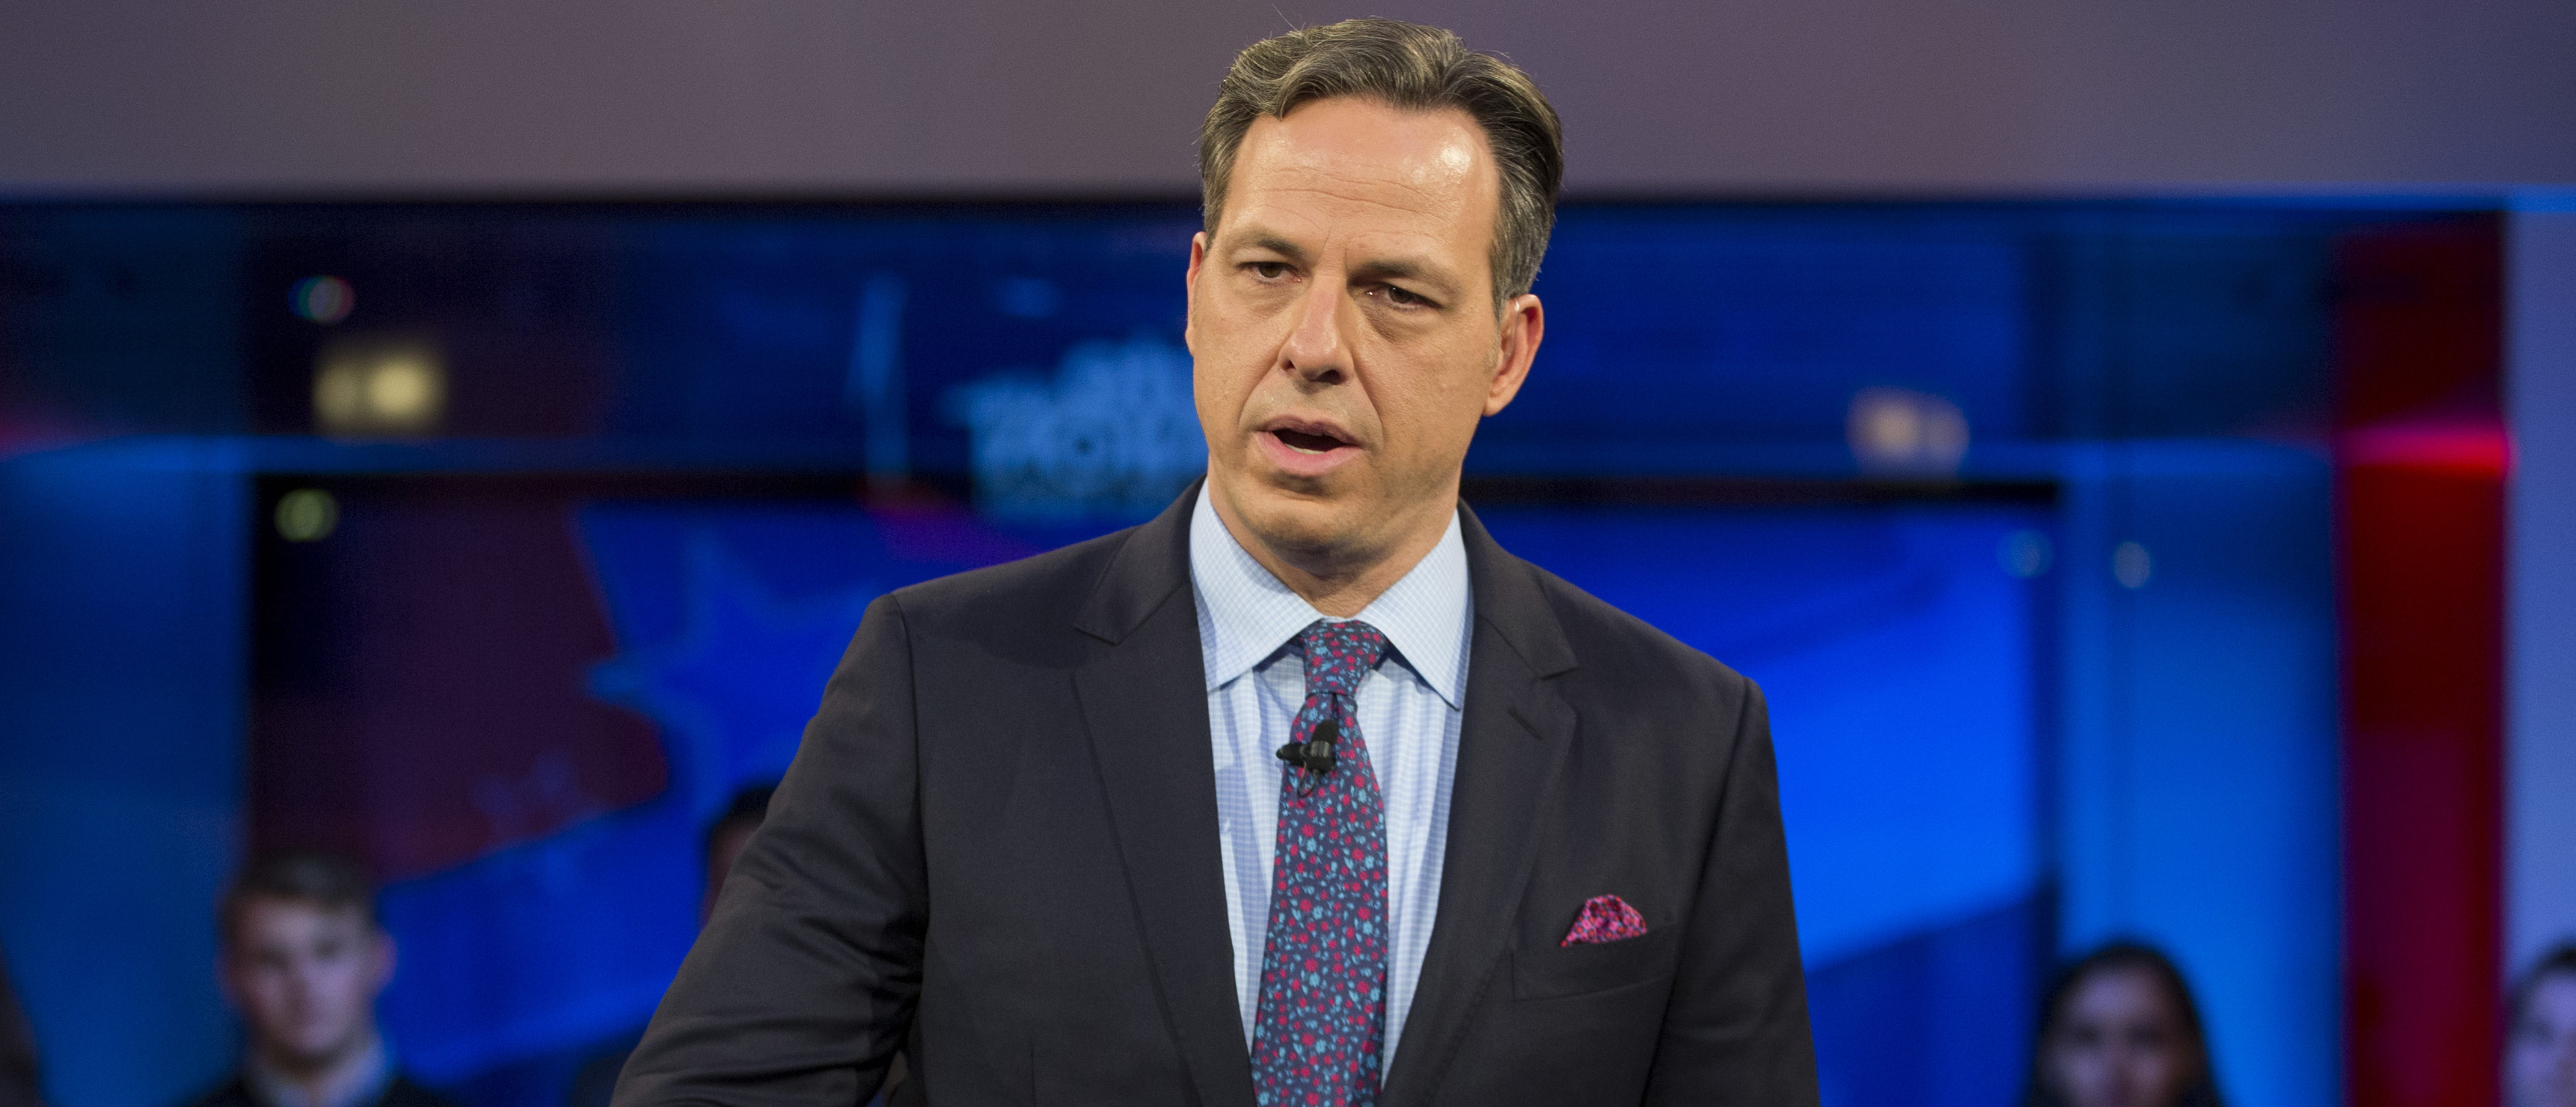 "CAMBRIDGE, MA - DECEMBER 01: Jake Tapper, of CNN's State of the Union, speaks to a crowd at the Harvard Institute of Politics Forum before Trump Campaign Manager Kellyanne Conway and Clinton Campaign Manager Robby Mook enter the room for an event titled ""War Stories: Inside Campaign 2016"" on December 1, 2016 in Cambridge, Massachusetts. (Photo by Scott Eisen/Getty Images)"